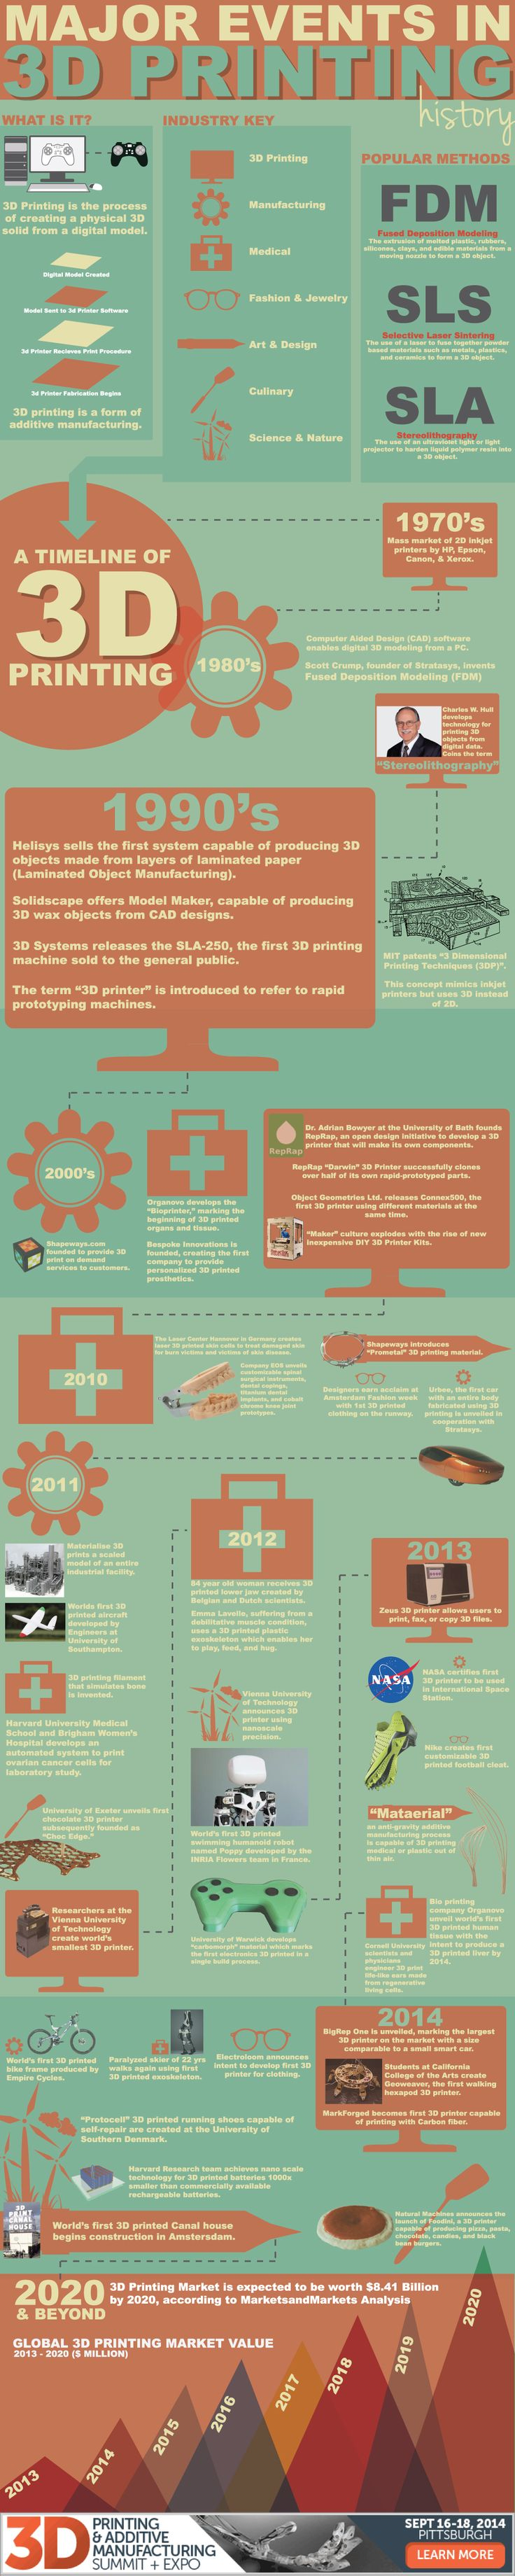 an up to date new 3d printing infographic from 3dprintingsummit com